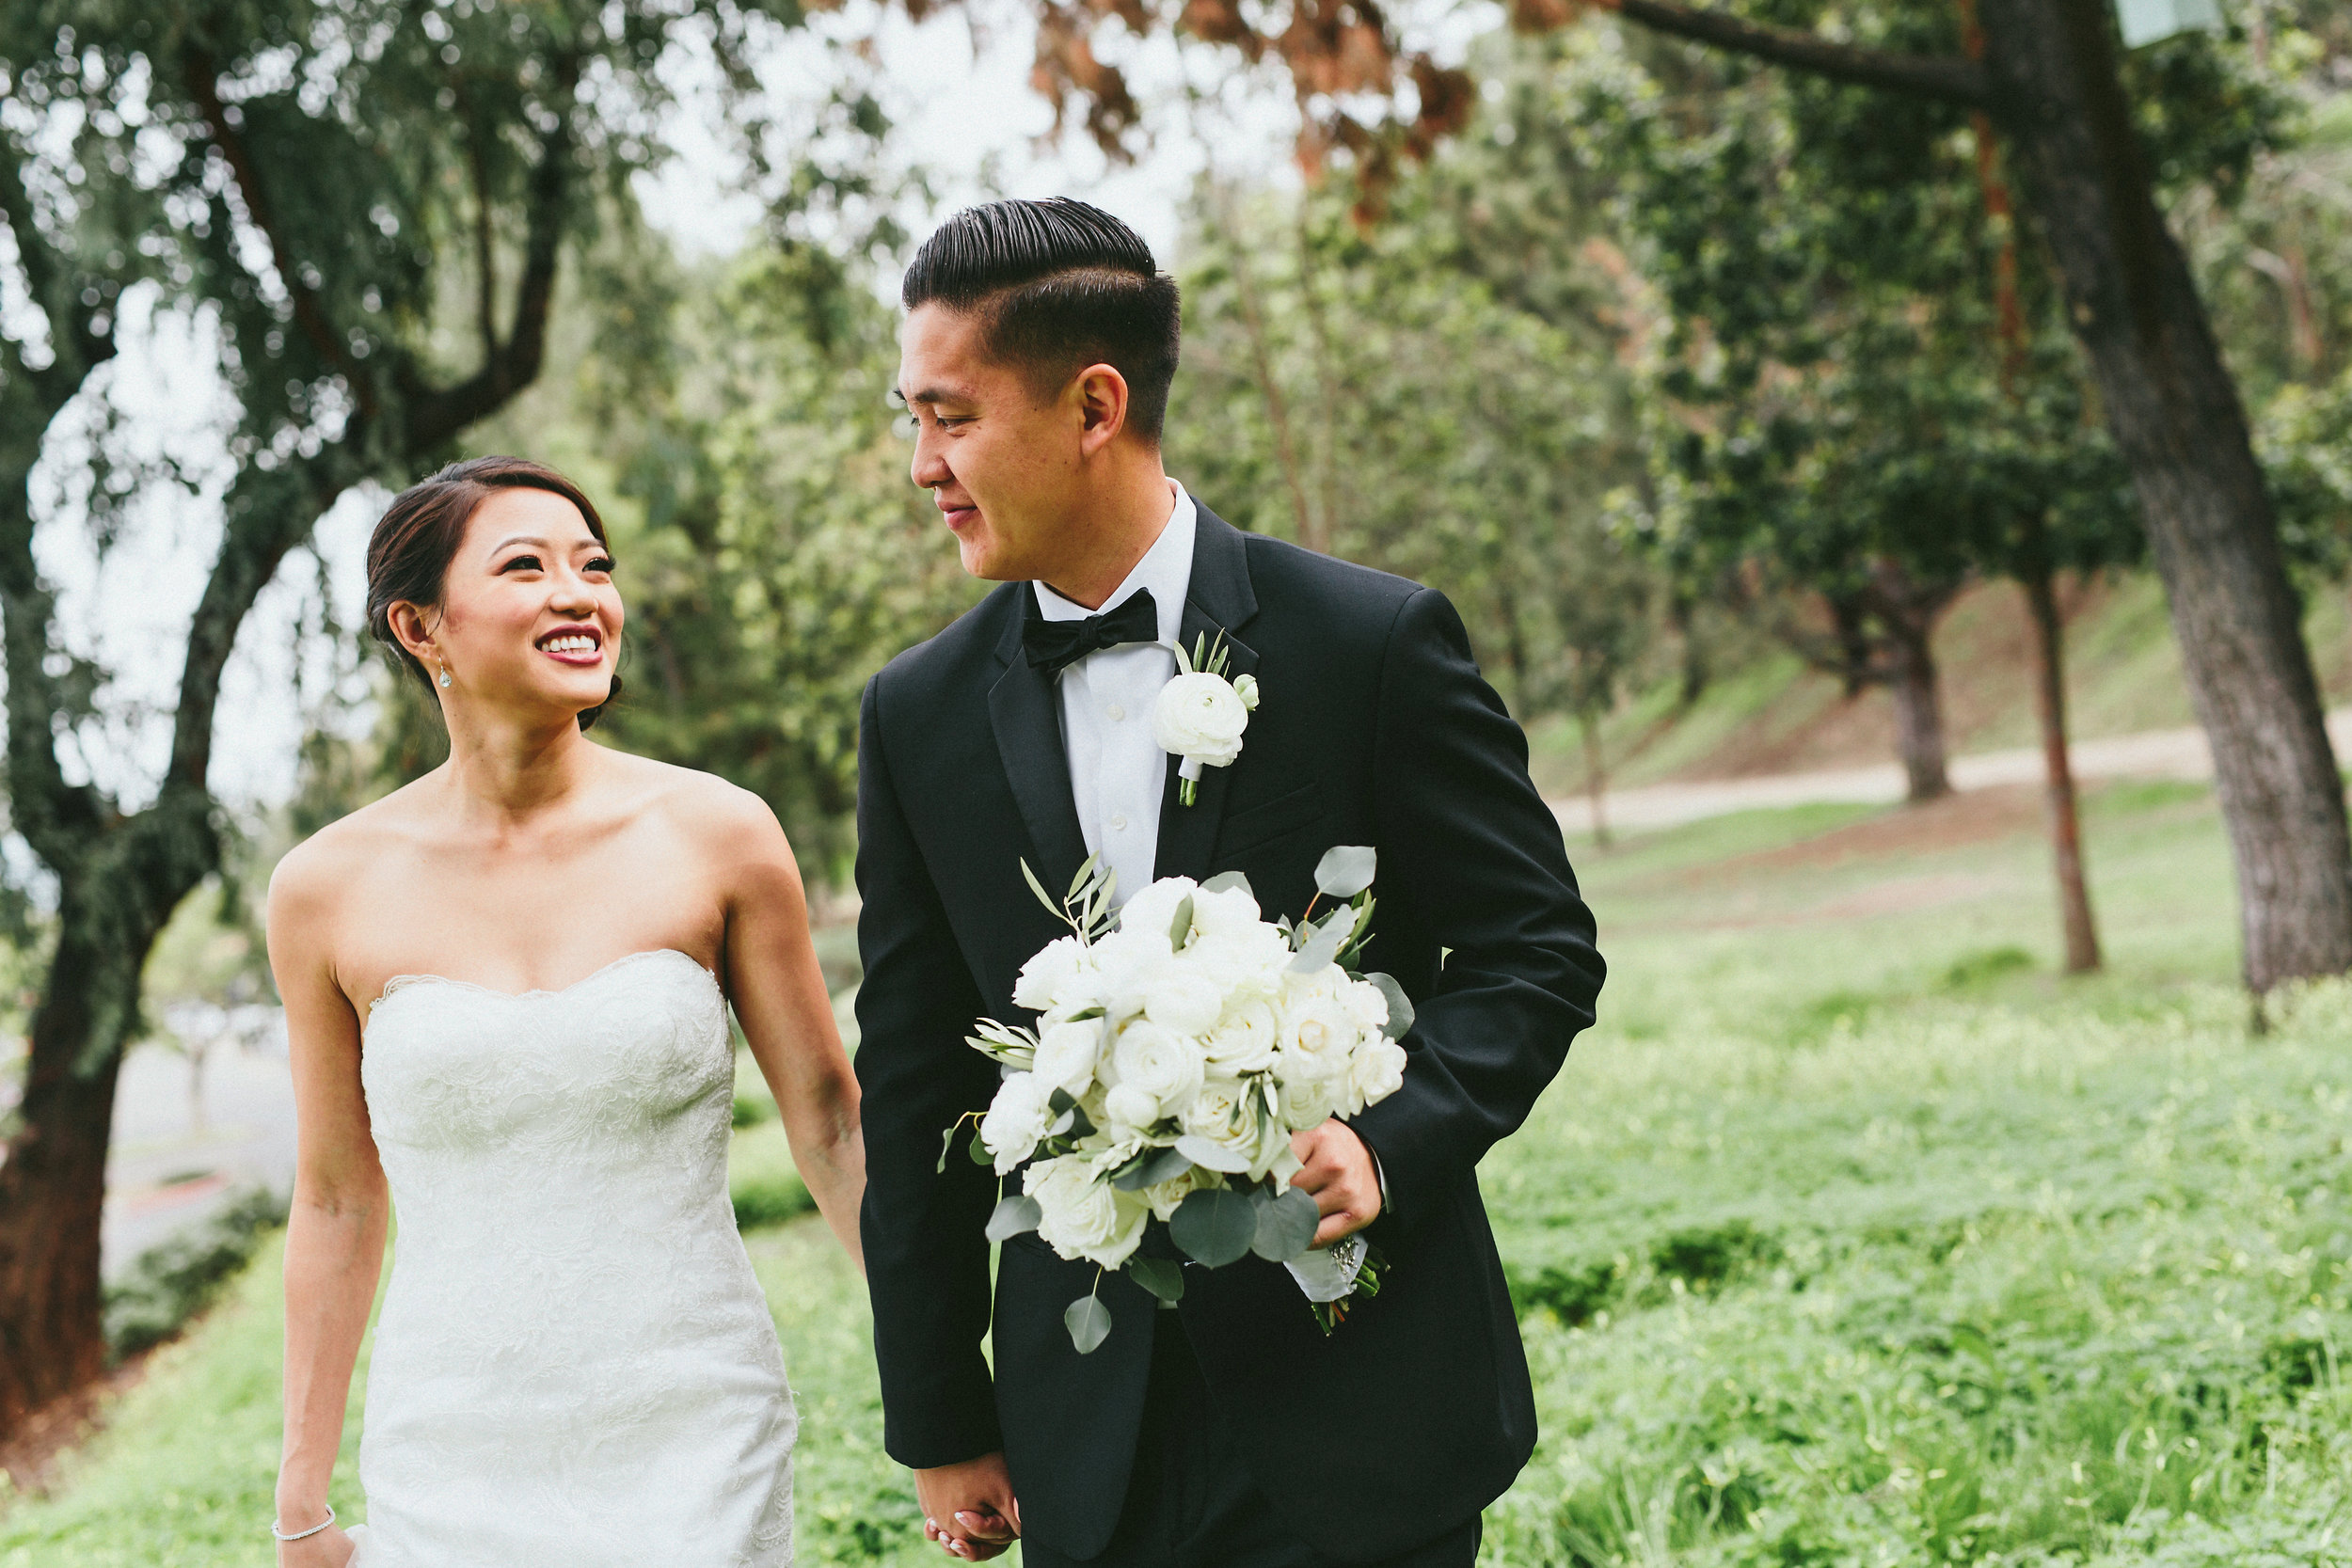 Carrie & Greg - Los Coyotes Country Club  - Buena Park, CA